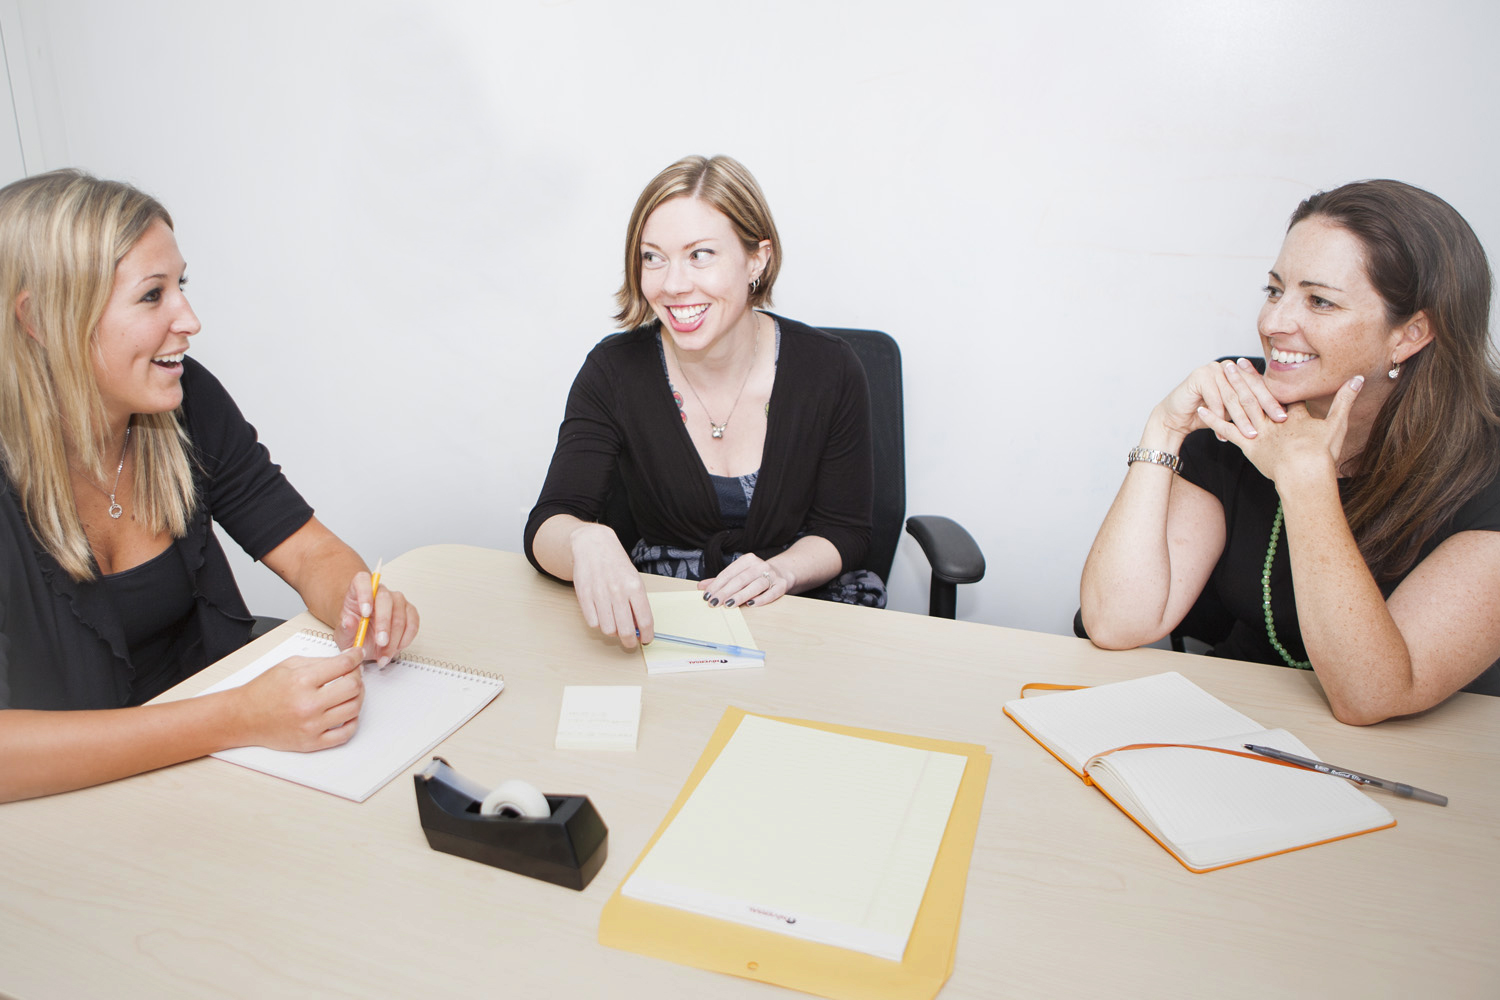 3 Women in business meeting at table